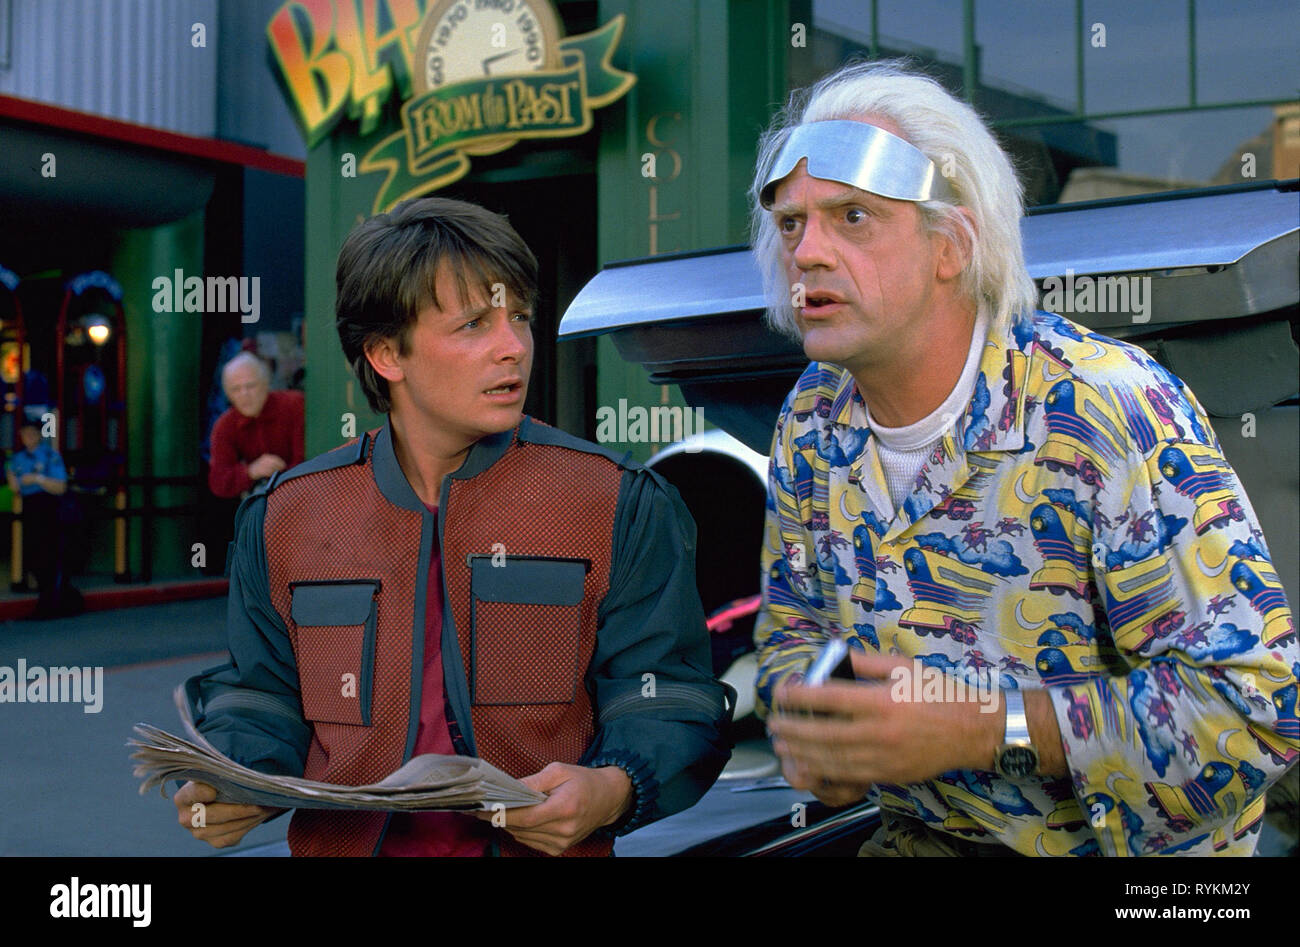 Back To The Future Part Ii High Resolution Stock Photography And Images Alamy